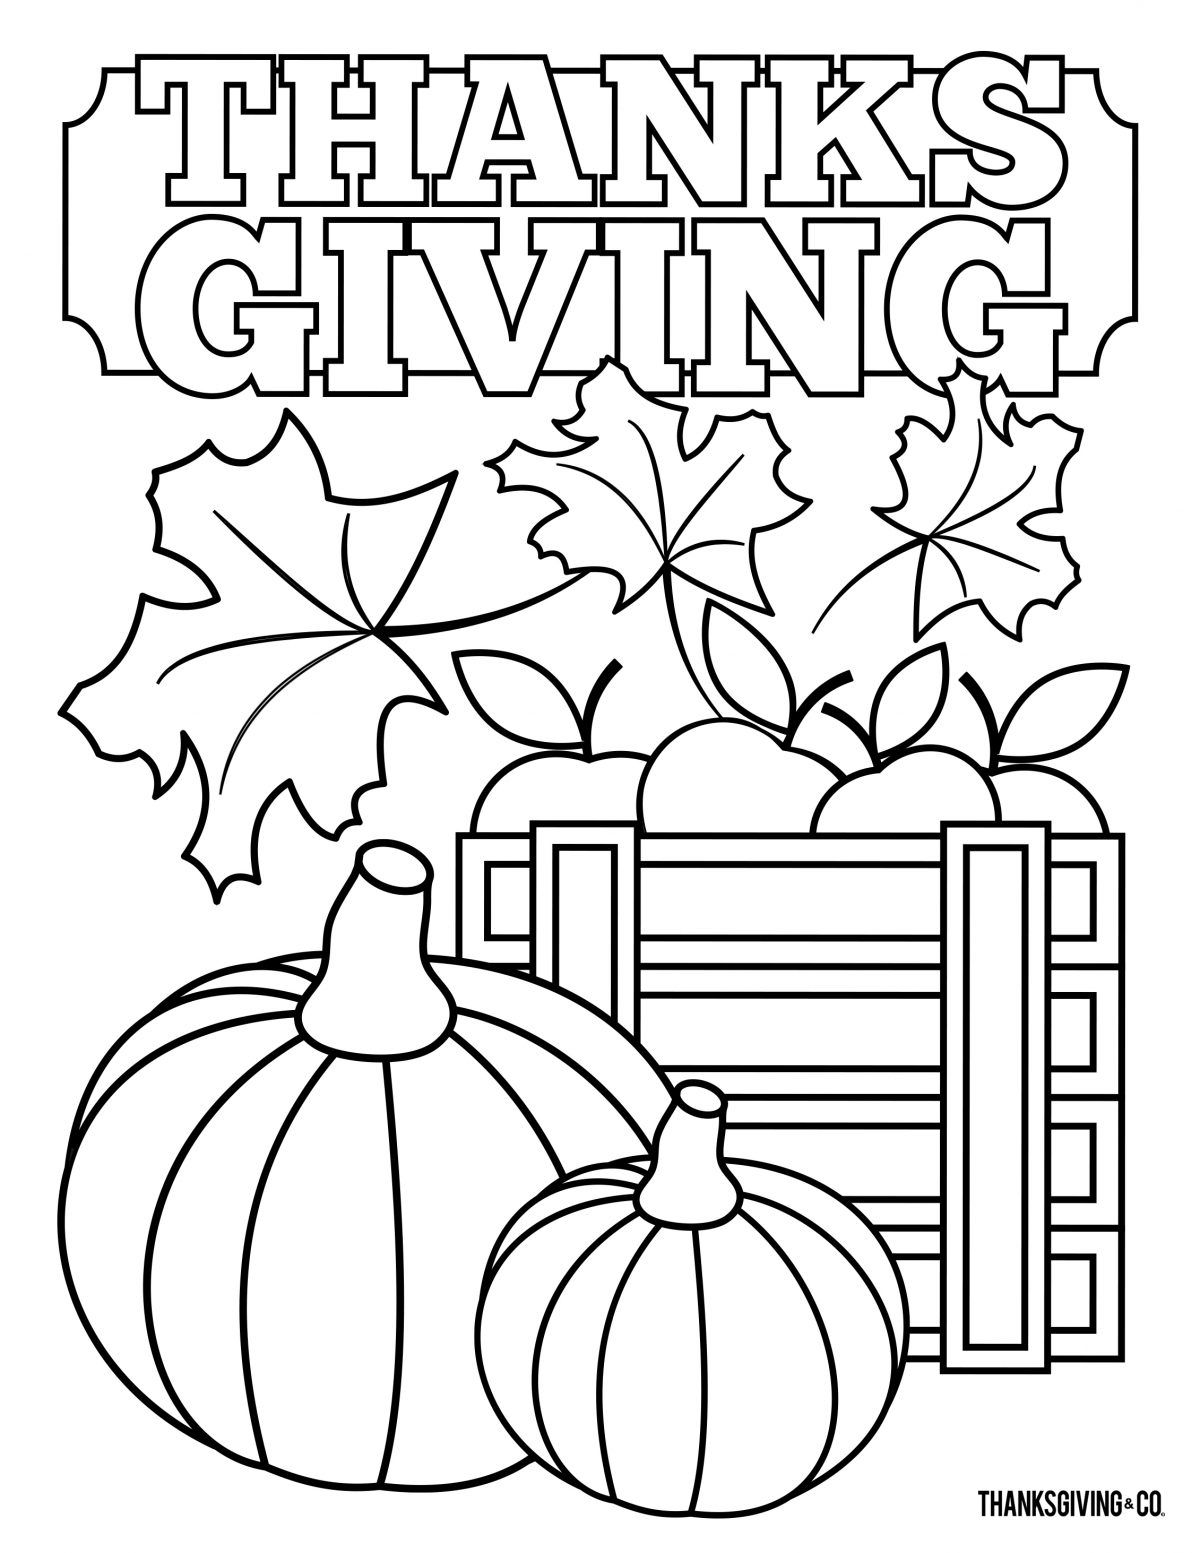 7 Thanksgiving Coloring Pages You Can Print Thanksgiving Coloring Pages Thanksgiving Coloring Sheets Pumpkin Coloring Sheet [ 1553 x 1200 Pixel ]